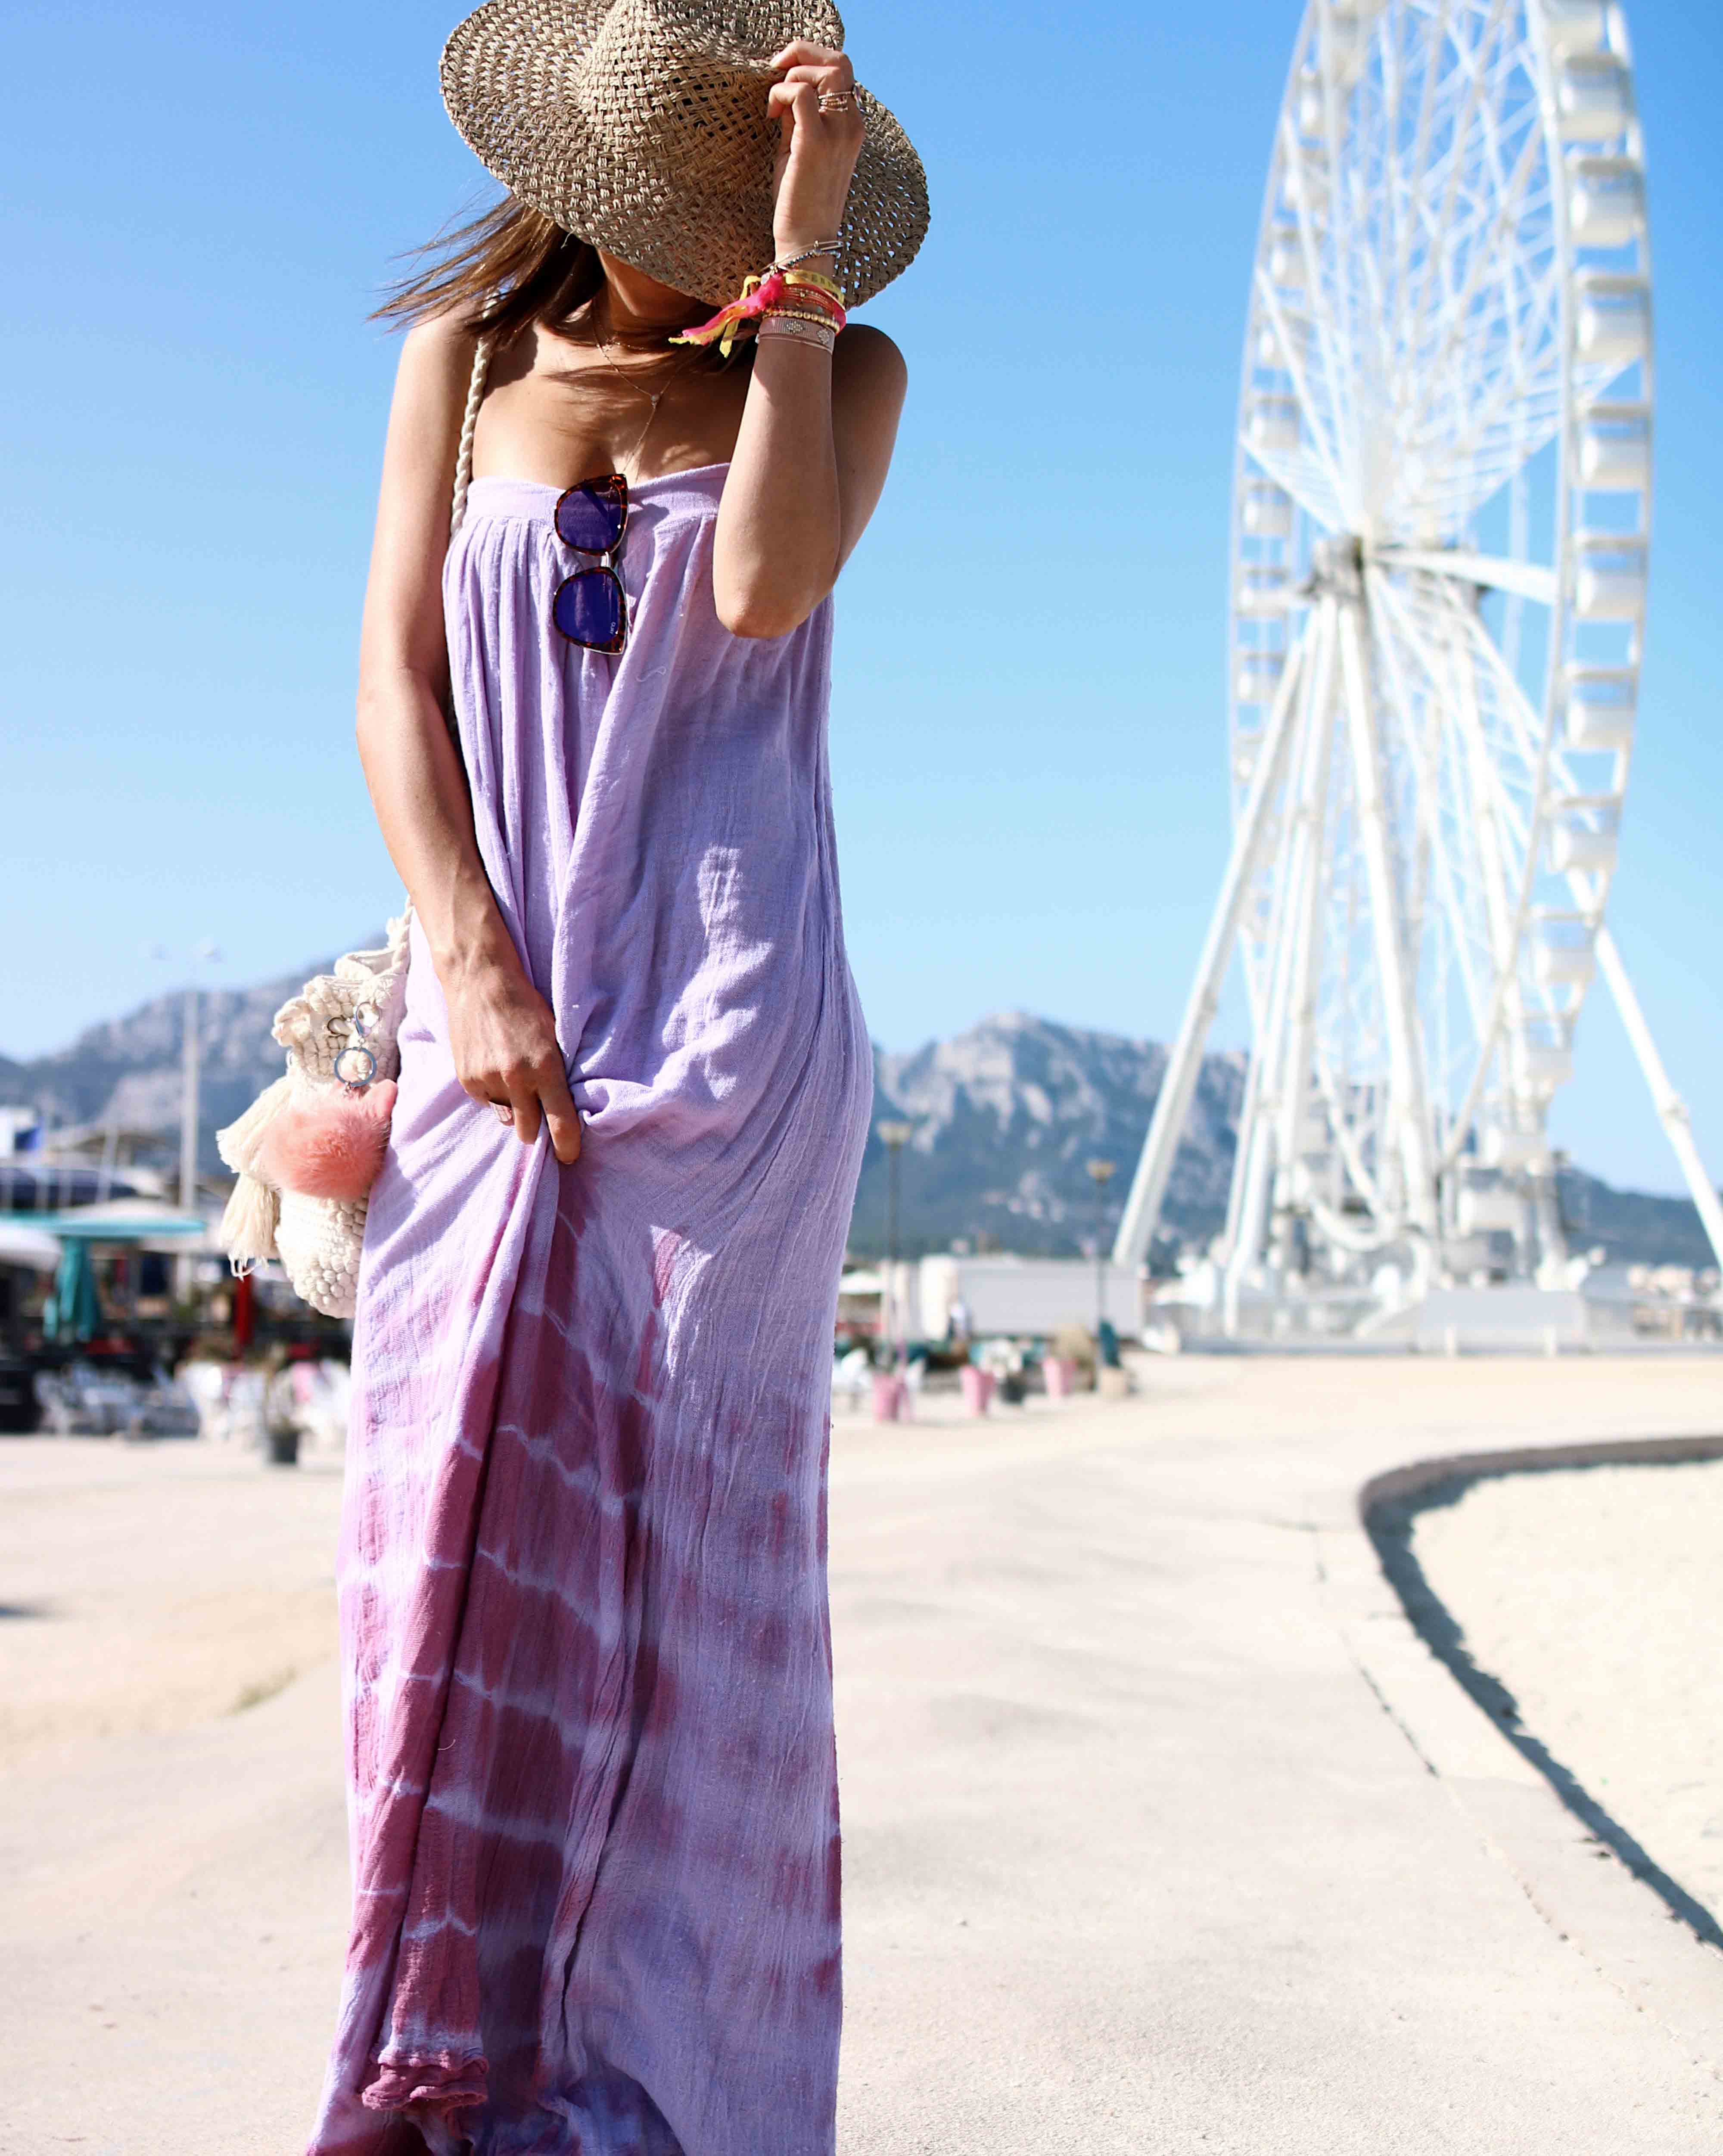 @chon.and.chon - WWW.CHONANDCHON.COM _ PURPLE TIE AND DYE MAXI DRESS, summer maxi dress, jen's pirate booty maxi dress, robe longue été tie and dye, robe longue violet